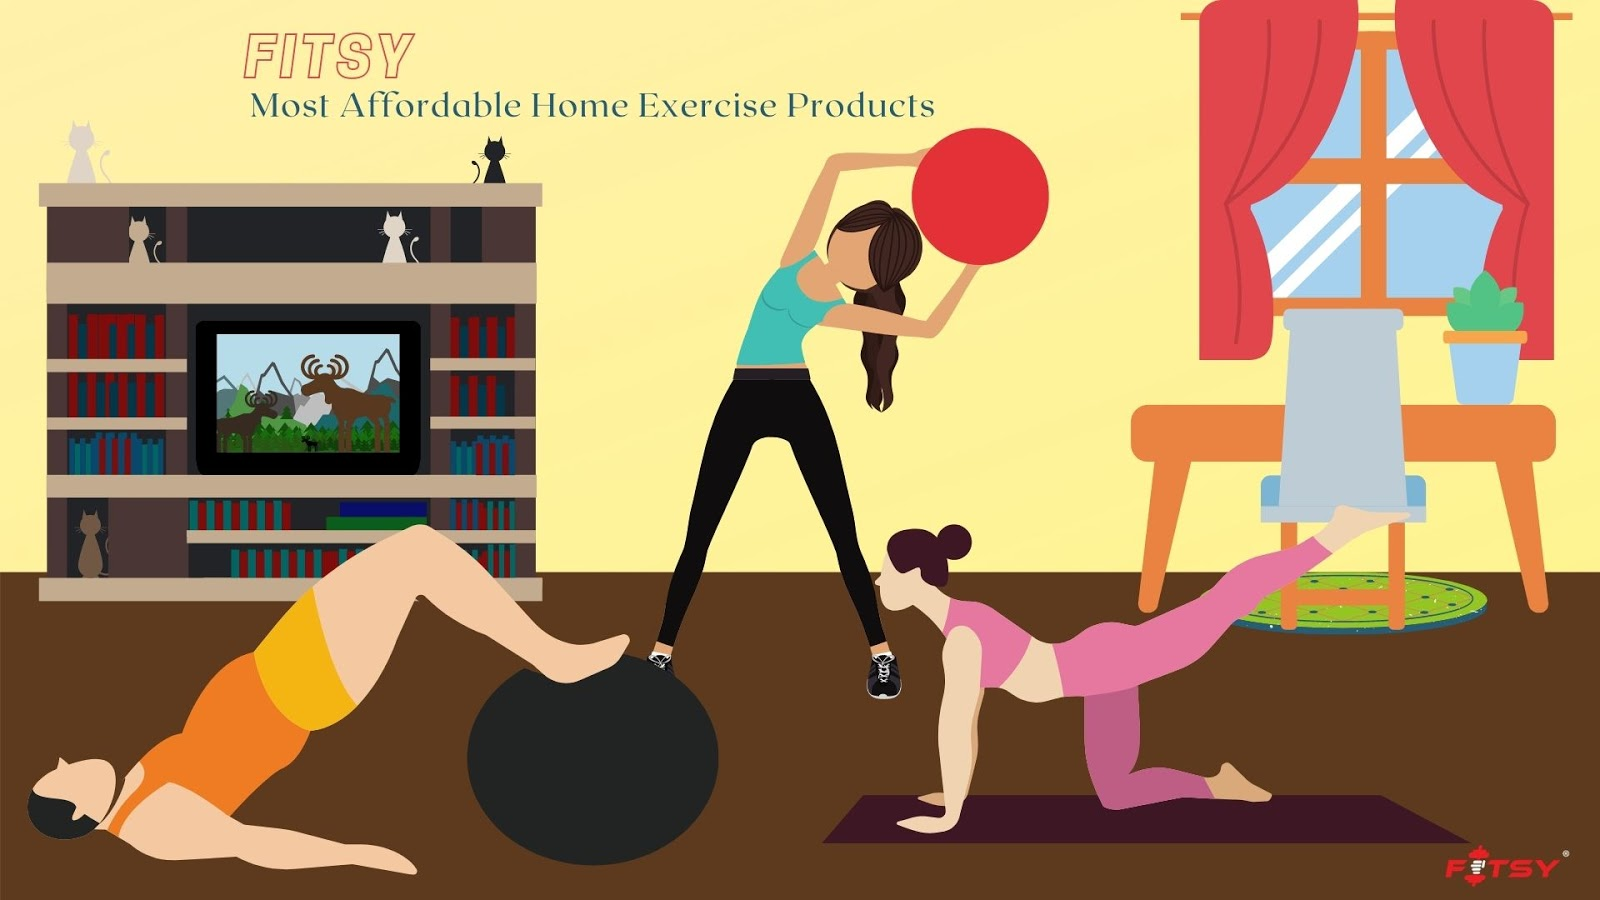 Why Should You Buy Affordable Workout Equipment for Home Gym Offered by FITSY?